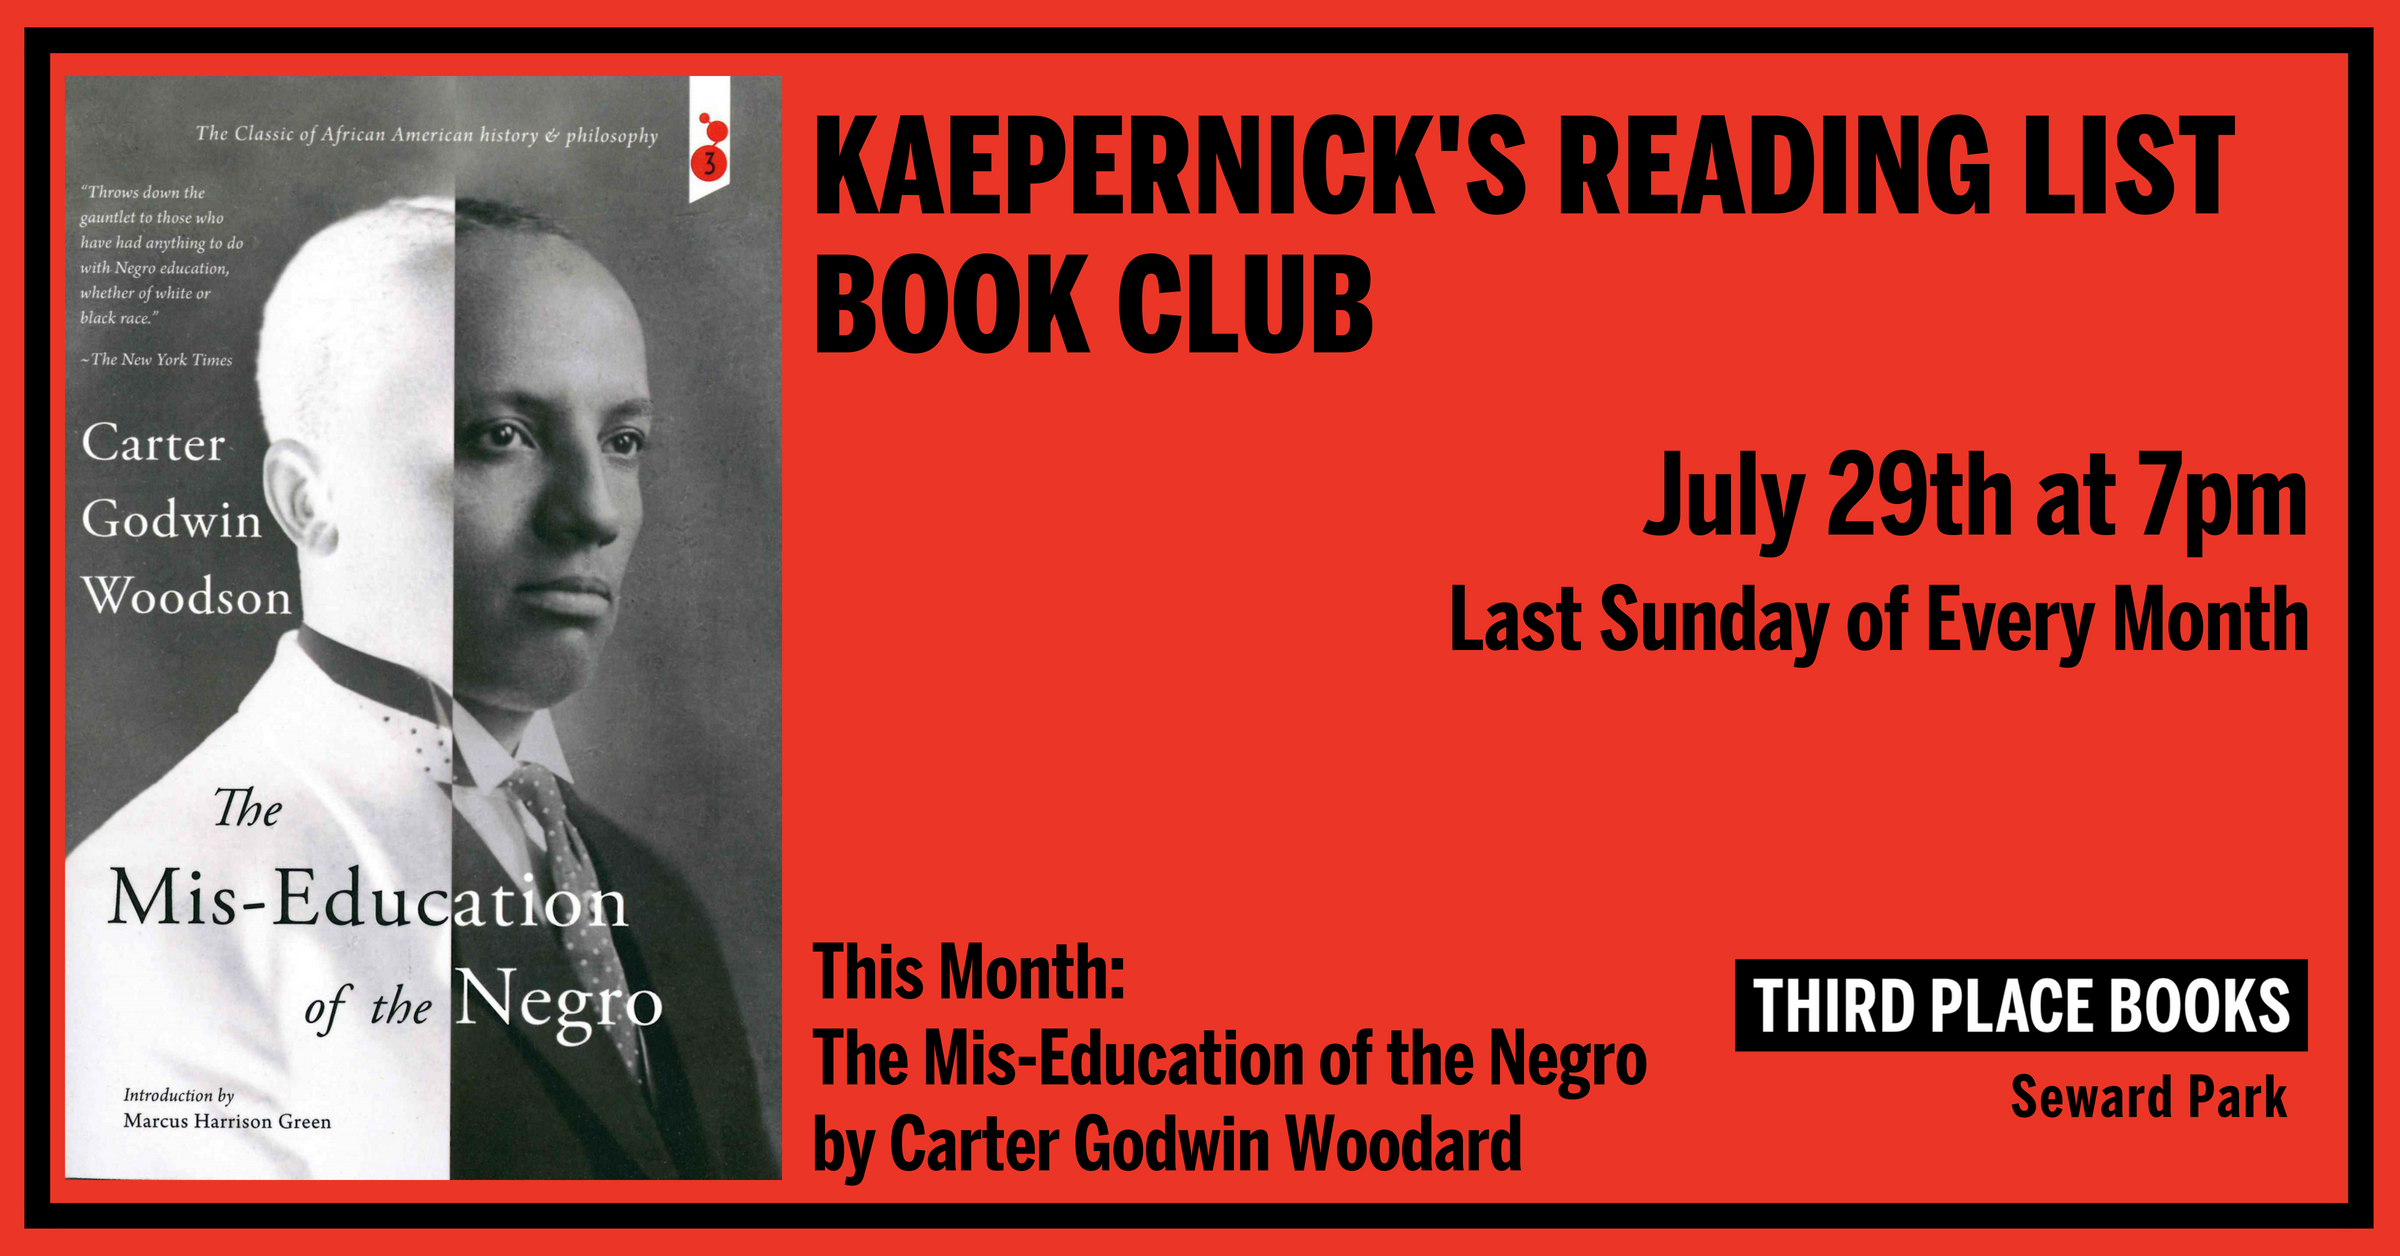 Kaepernick's Reading List Book Club reading The Mis-Education of the Negro on Sunday, July 29th at 7pm